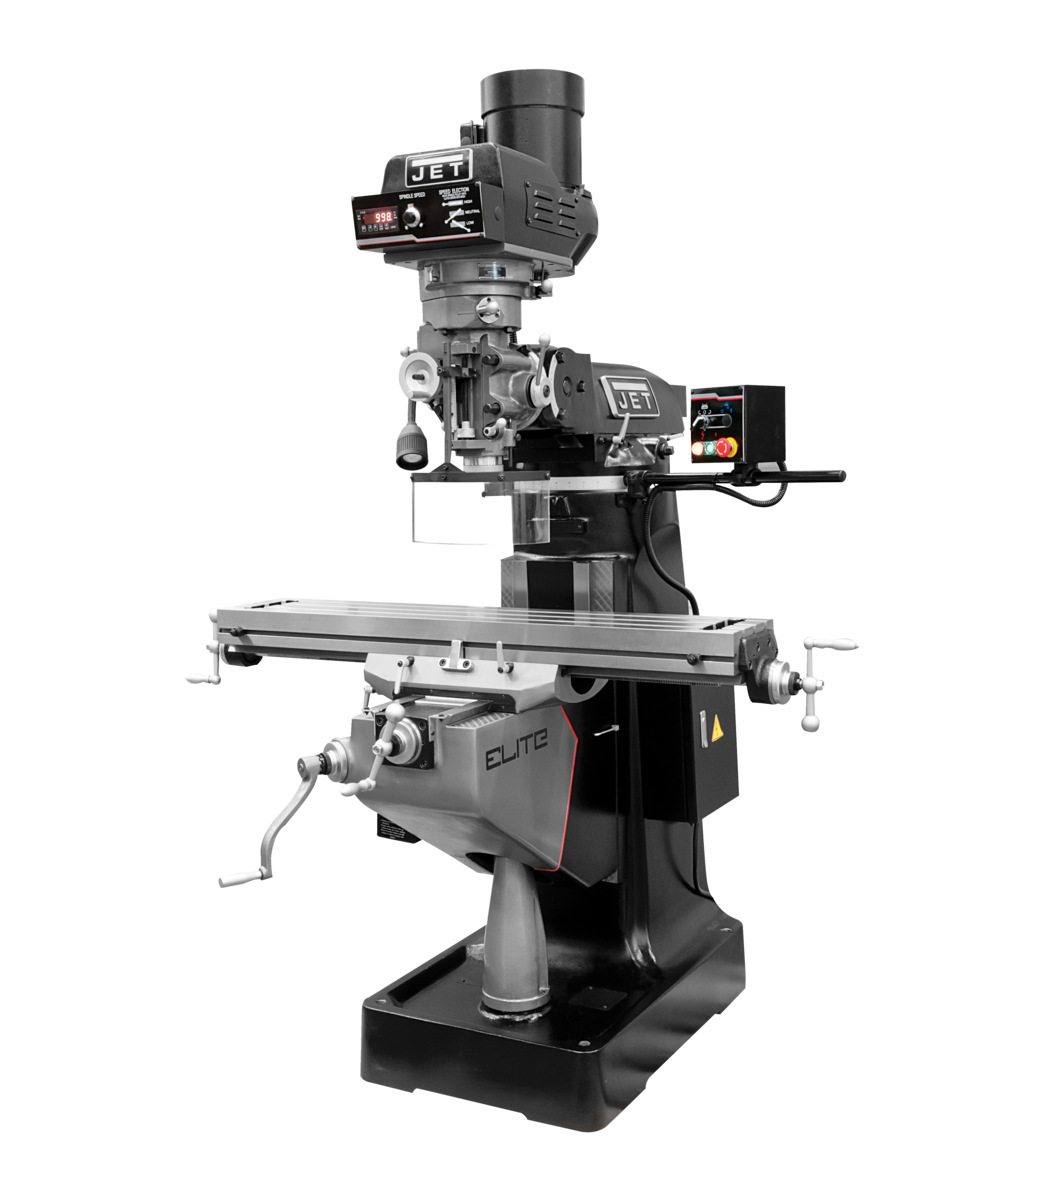 EVS-949 Mill with 3-Axis ACU-RITE 203 (Knee) DRO